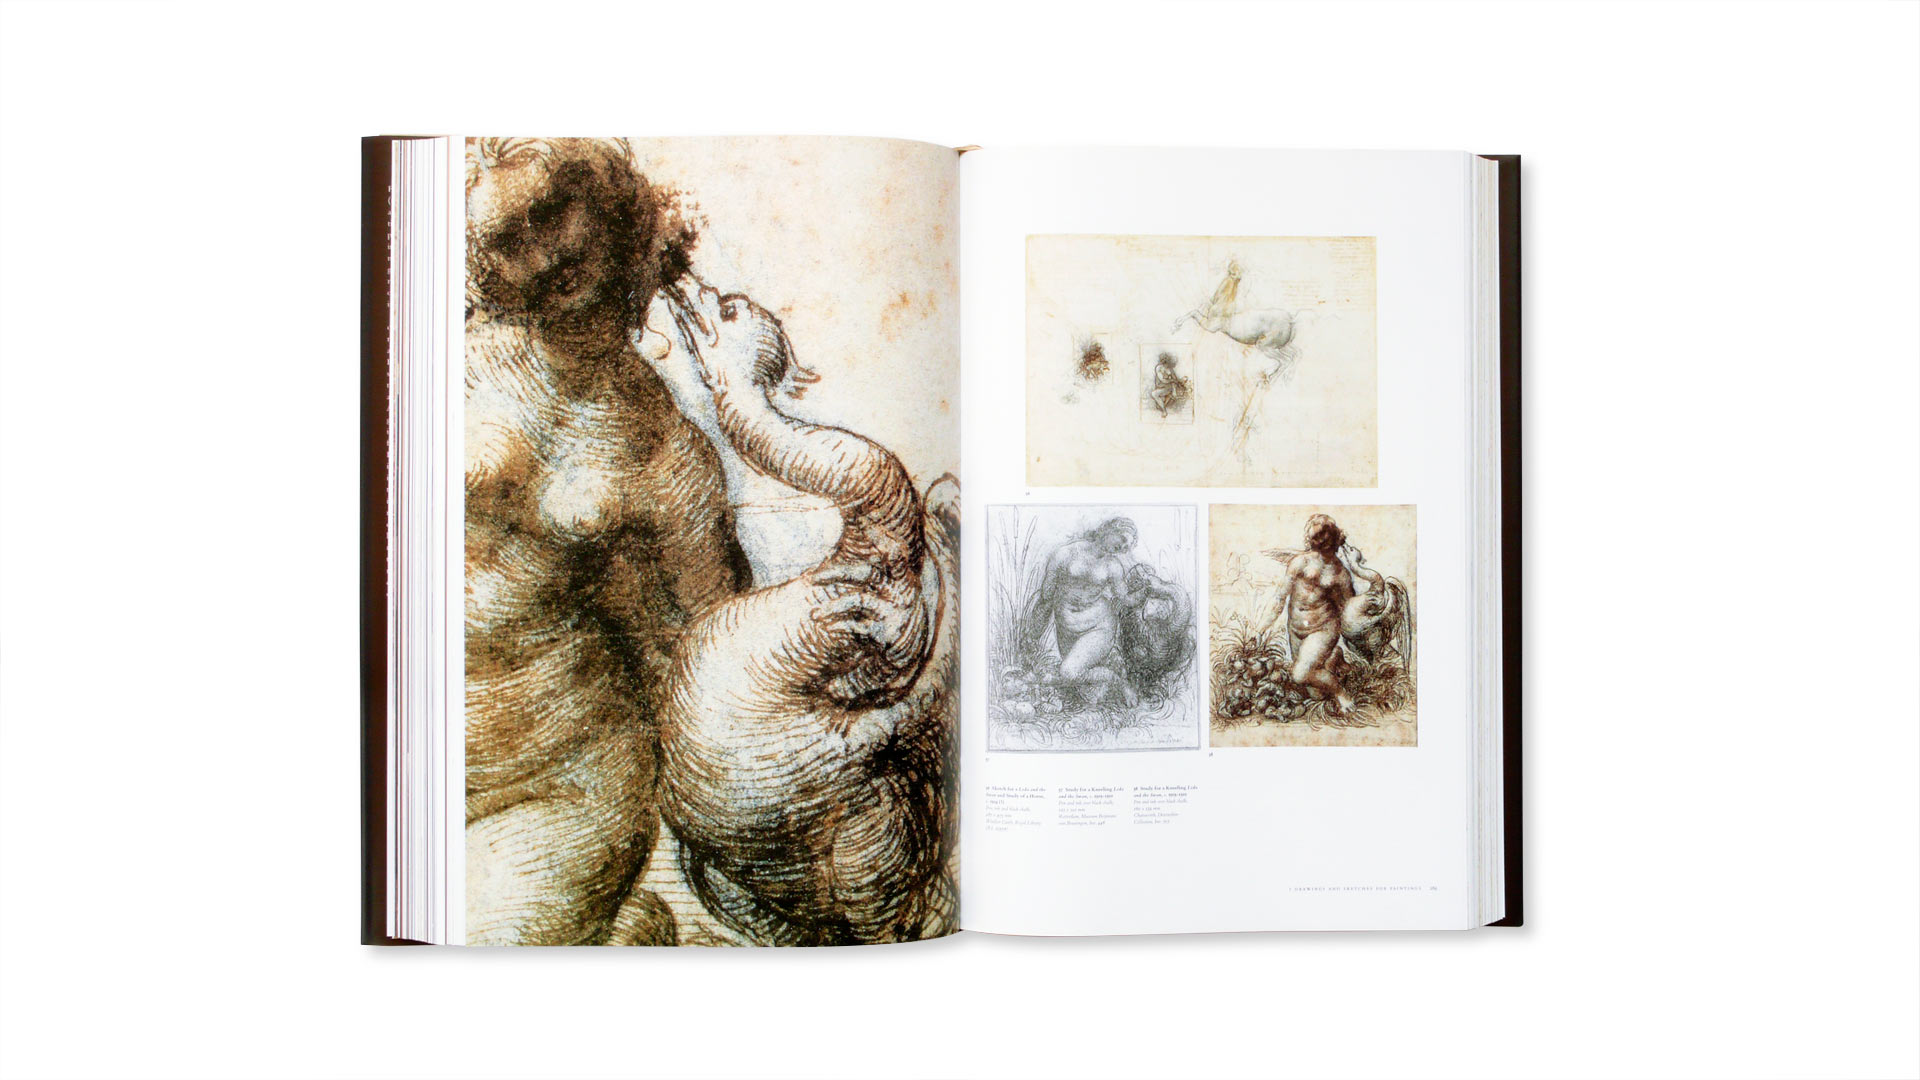 Leonardo da Vinci, The Complete Paintings and Drawings, Taschen Verlag |  Thomas Manss & Company